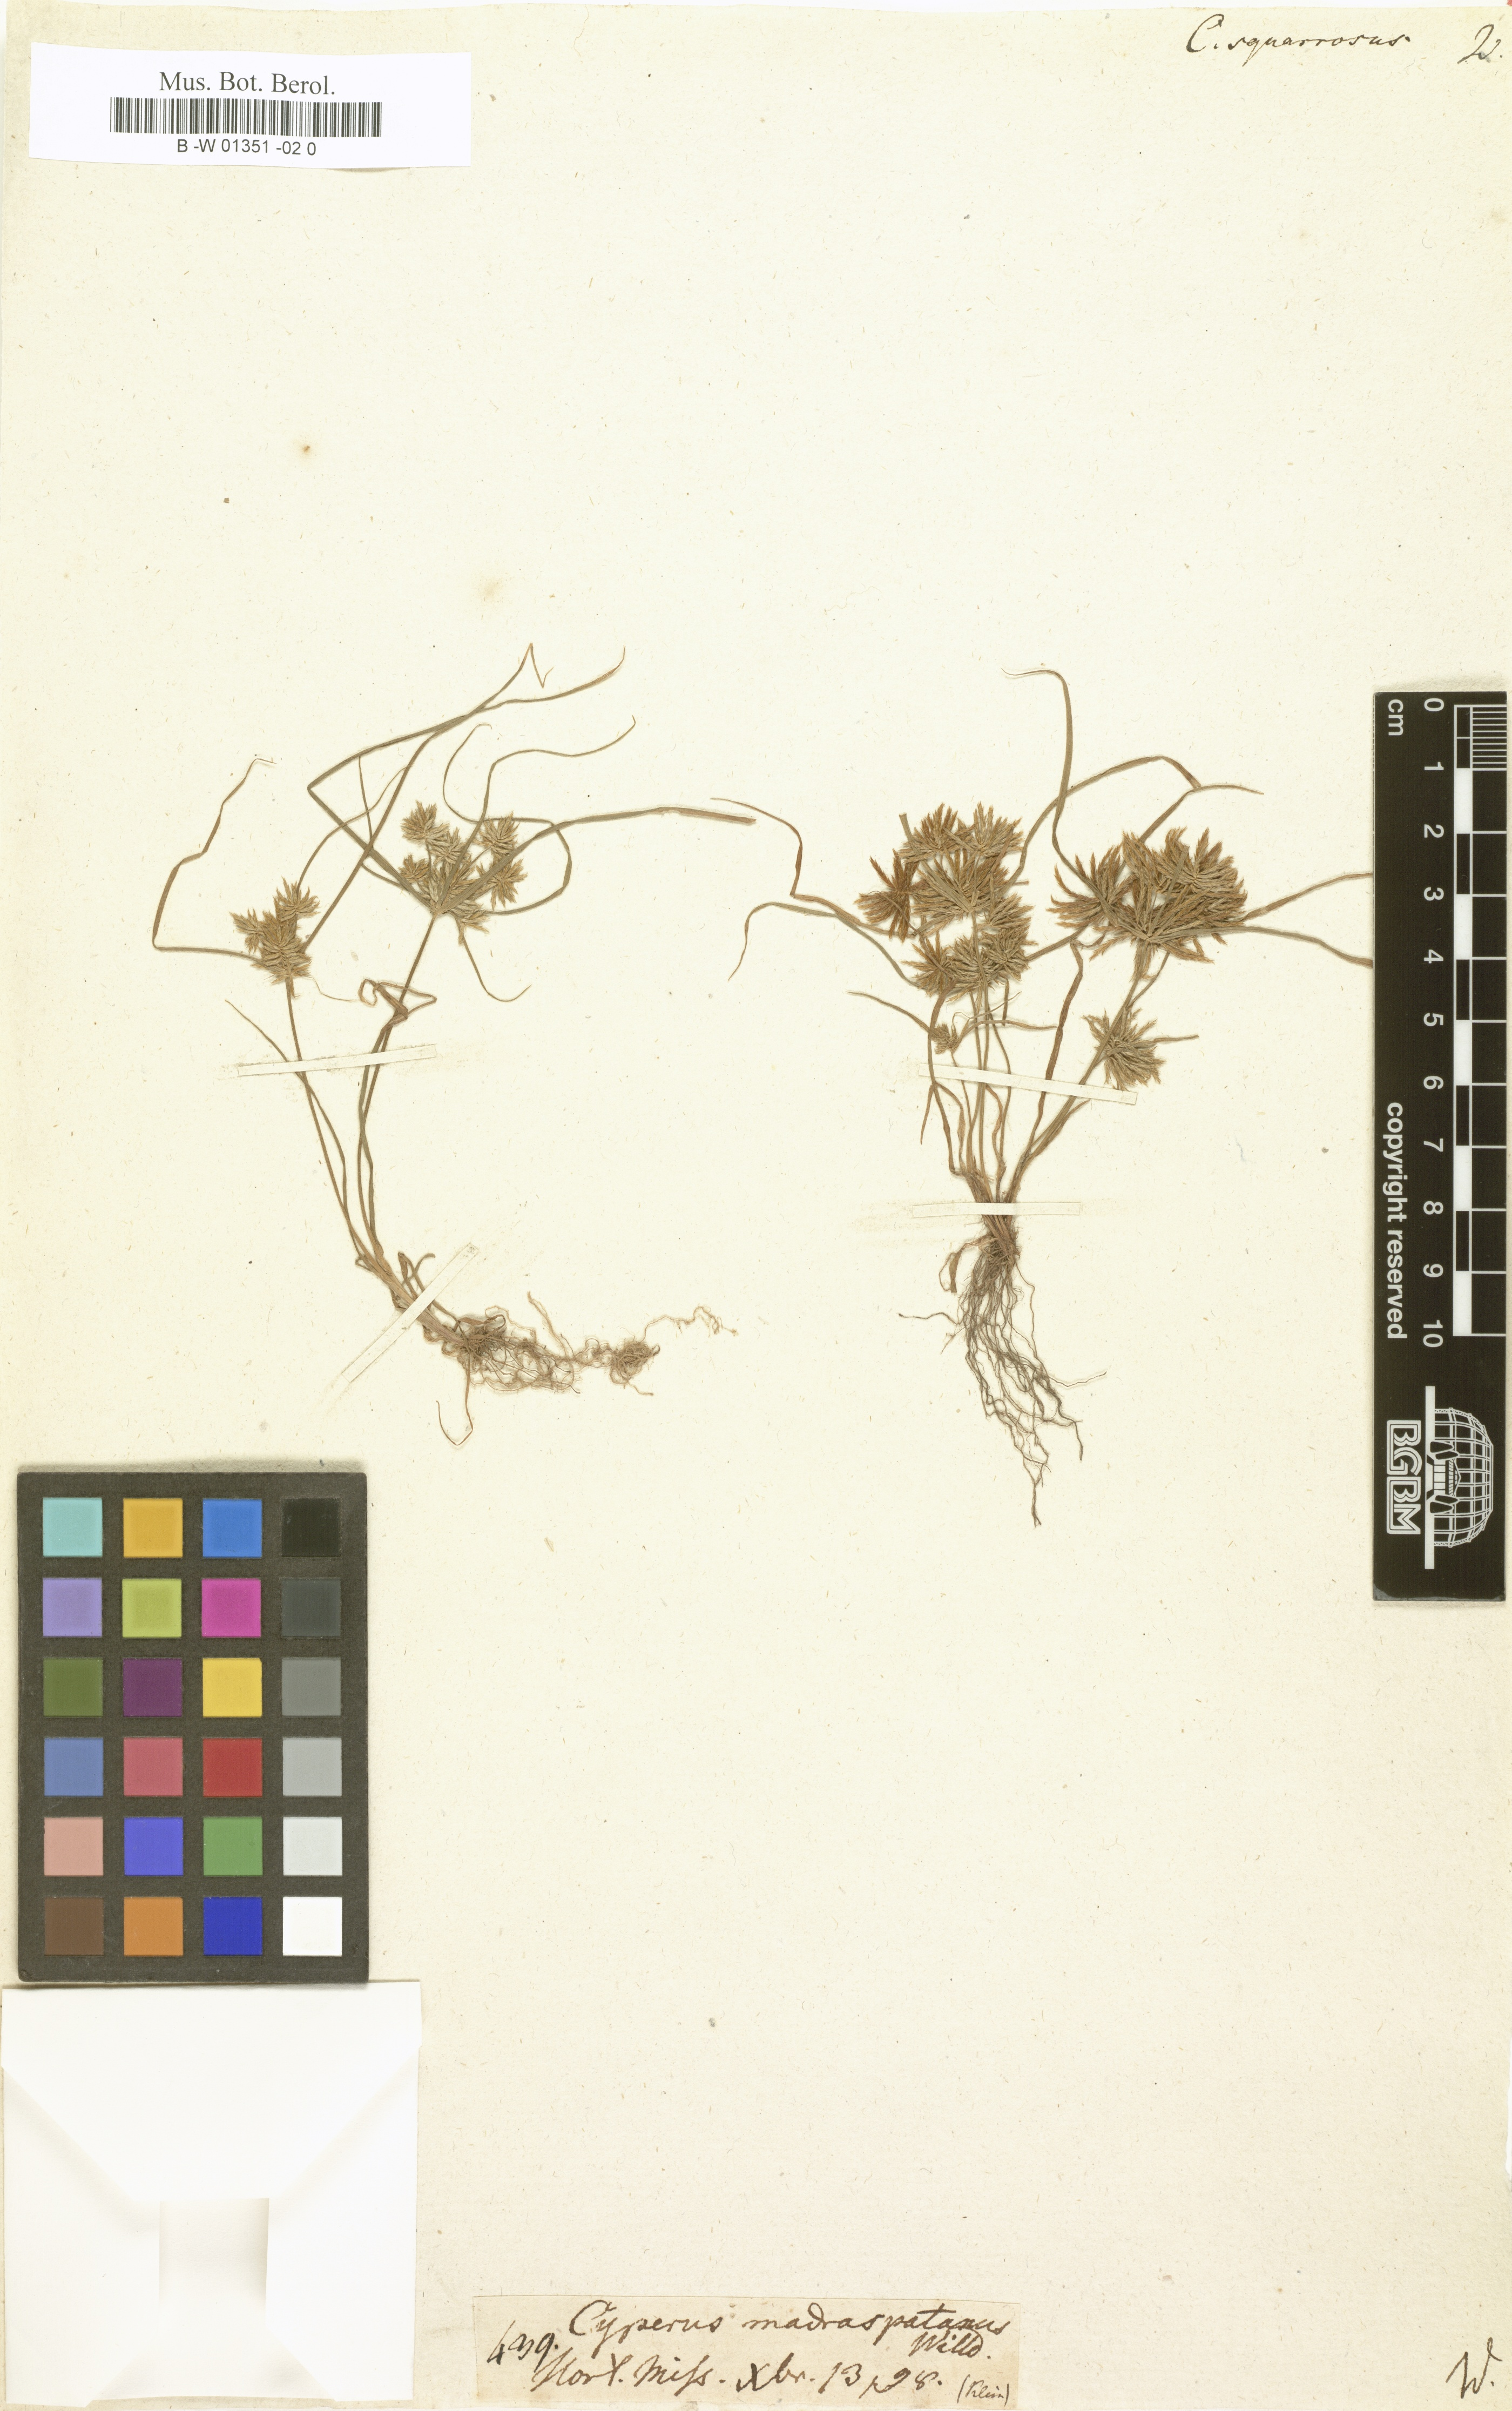 © Botanic Garden and Botanical Museum Berlin-Dahlem, Freie Universität Berlin<br>by Röpert, D. (Ed.) 2000- (continuously updated): Digital specimen images at the Herbarium Berolinense. - Published on the Internet http://ww2.bgbm.org/herbarium/ (Barcode: B -W 01351 -02 0 / ImageId: 321594) [accessed 27-Nov-11].<br>